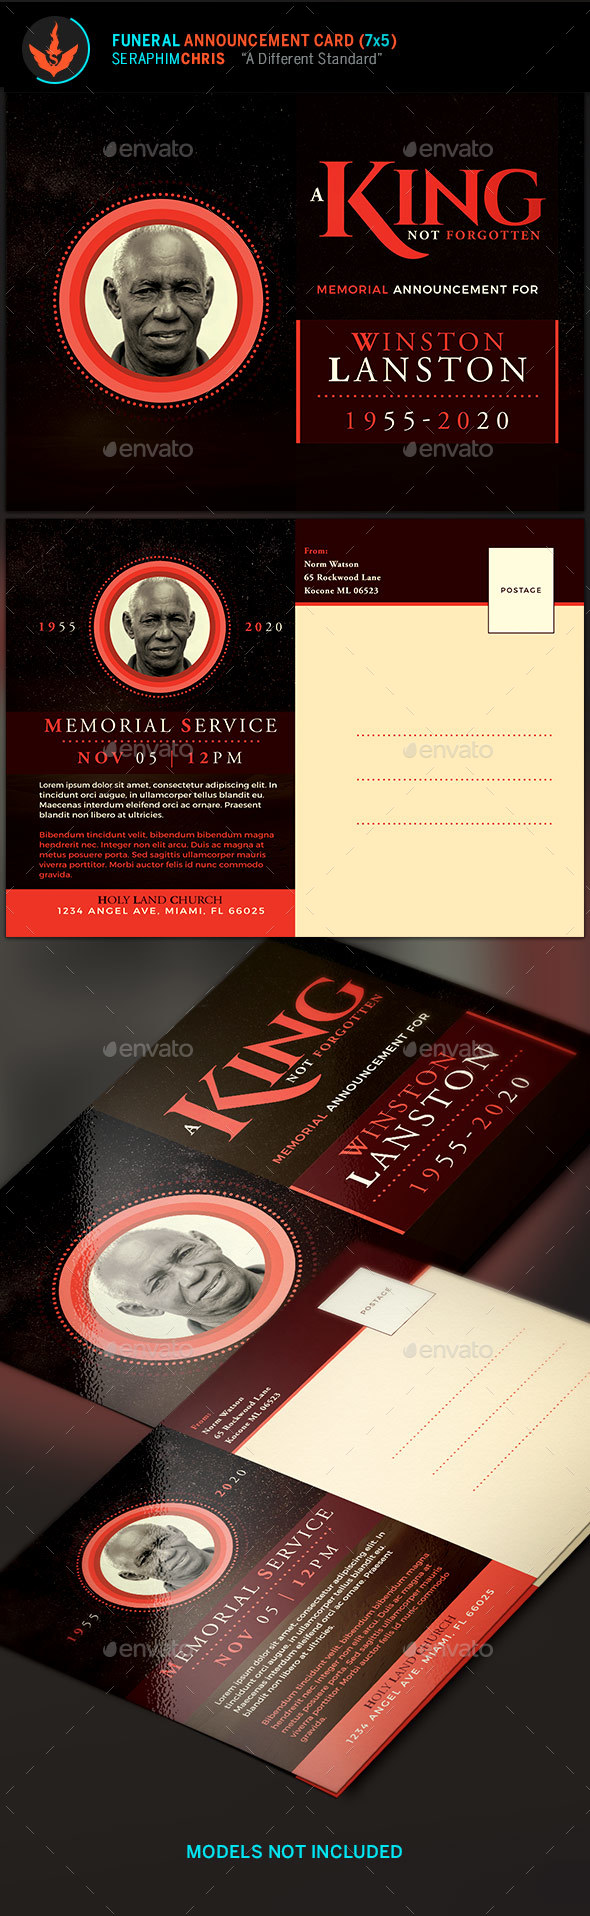 GraphicRiver King Funeral Announcement Card Template 21068905